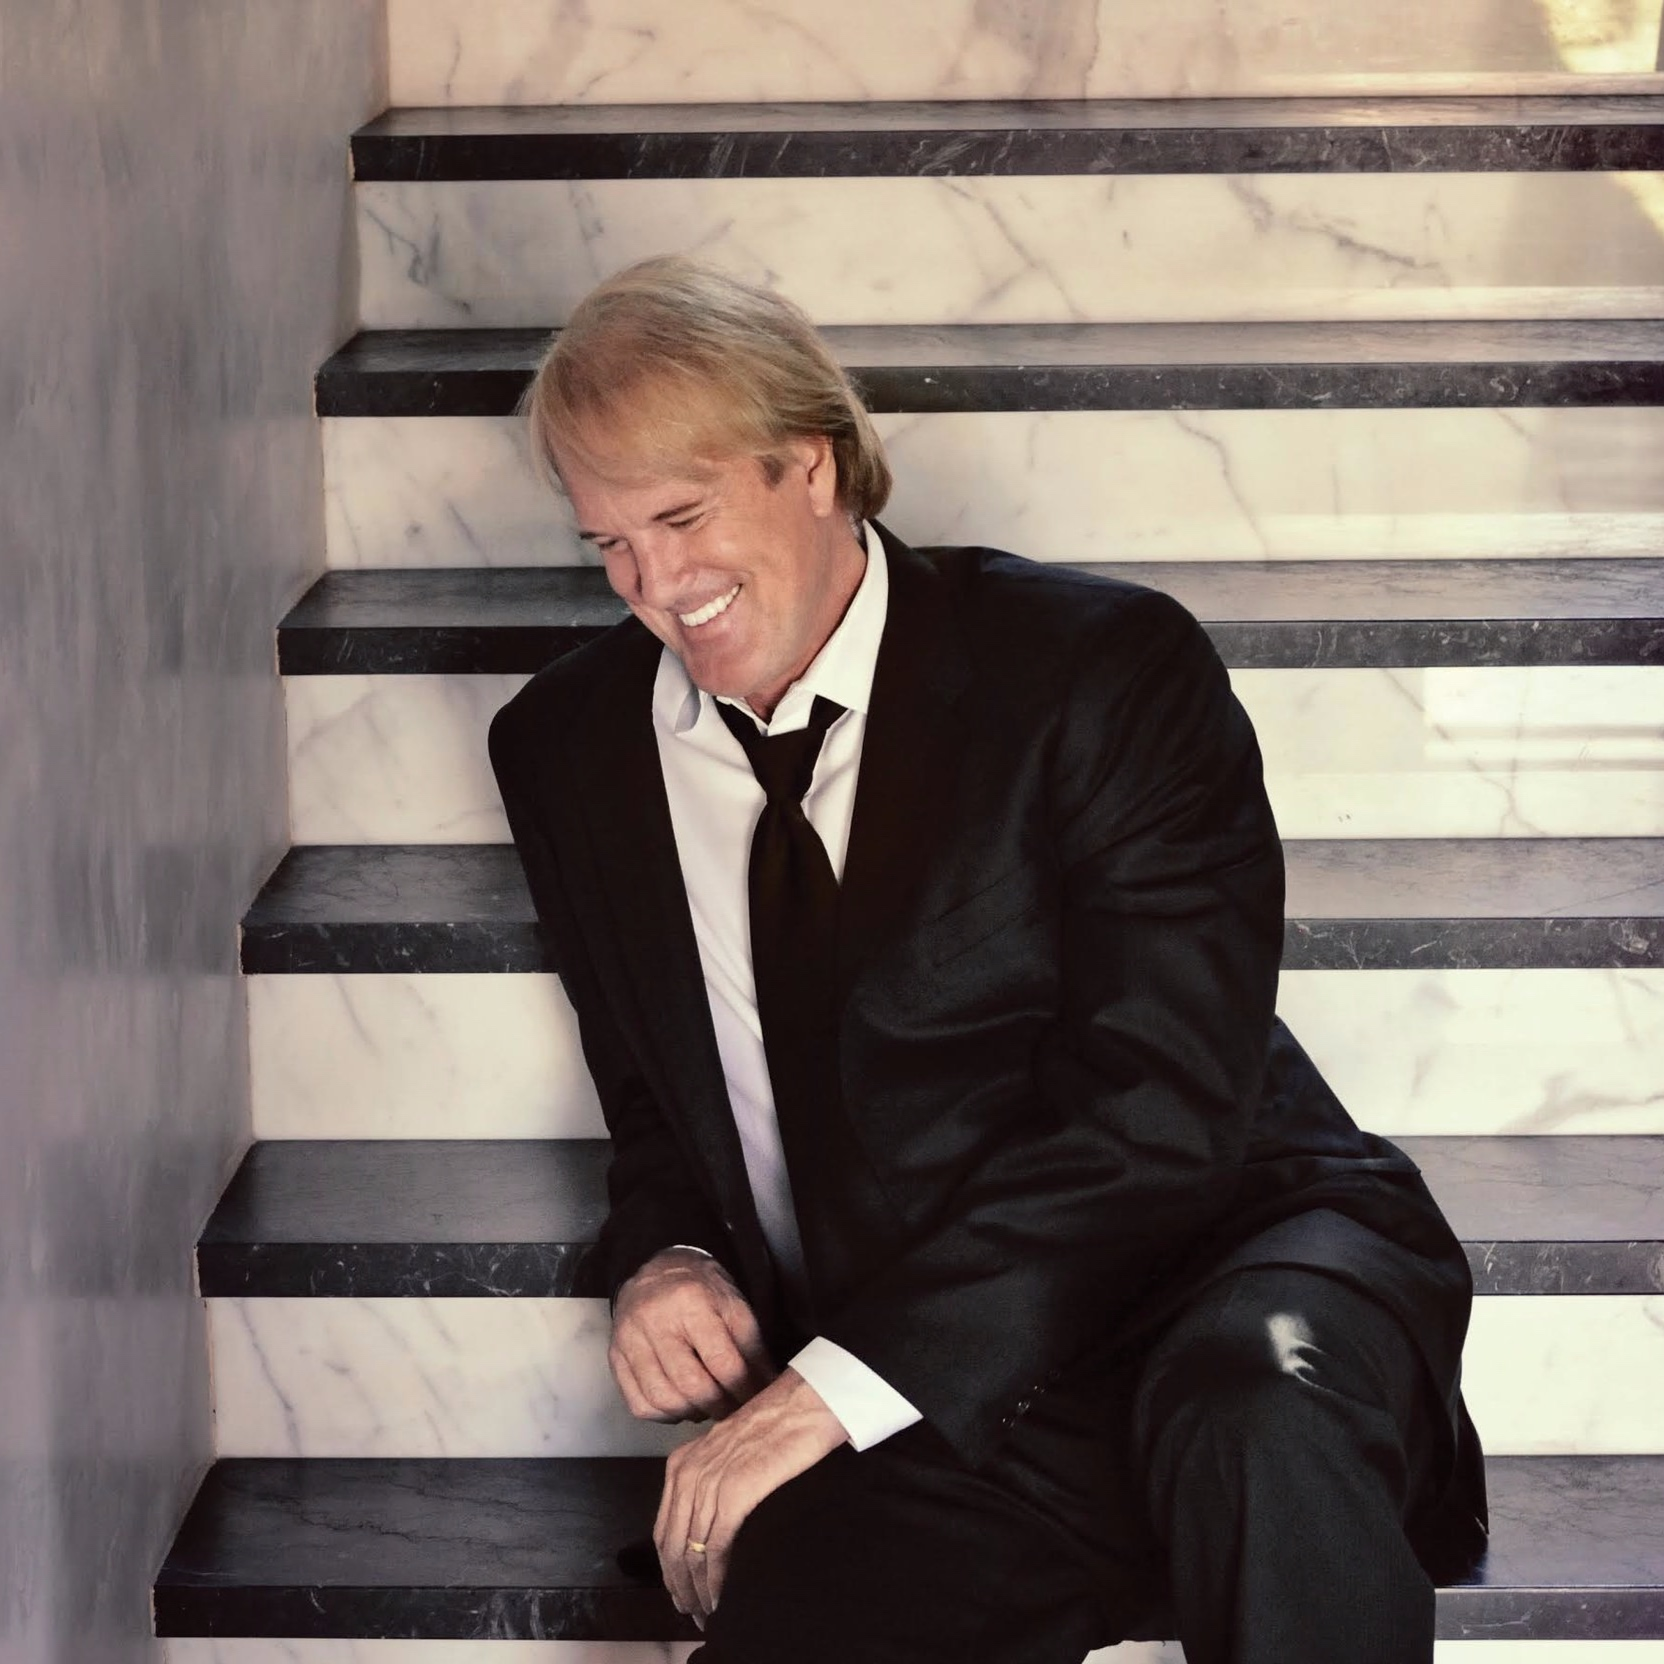 "John Tesh - For the past 15 years, John Tesh's dreams have branched out to his syndicated radio show ""Intelligence For Your Life,"" reaching 8.2 million listeners per week across the U.S., Canada and the U.K.The award-winning daily and weekly show he calls ""purpose driven radio"", inspired the trademarks and use in three more categories in their ""Intelligence for...."" family.""Intelligence for Your Health,"" ""Intelligence for Your Pets"" and ""Intelligence for Your Love Life"" have been added to Tesh's core brand, and have developed into stand-alone content-rich websites with products designed around the ""Intelligence"" Tesh and his staff have gathered in the 15 years since they launched the show."